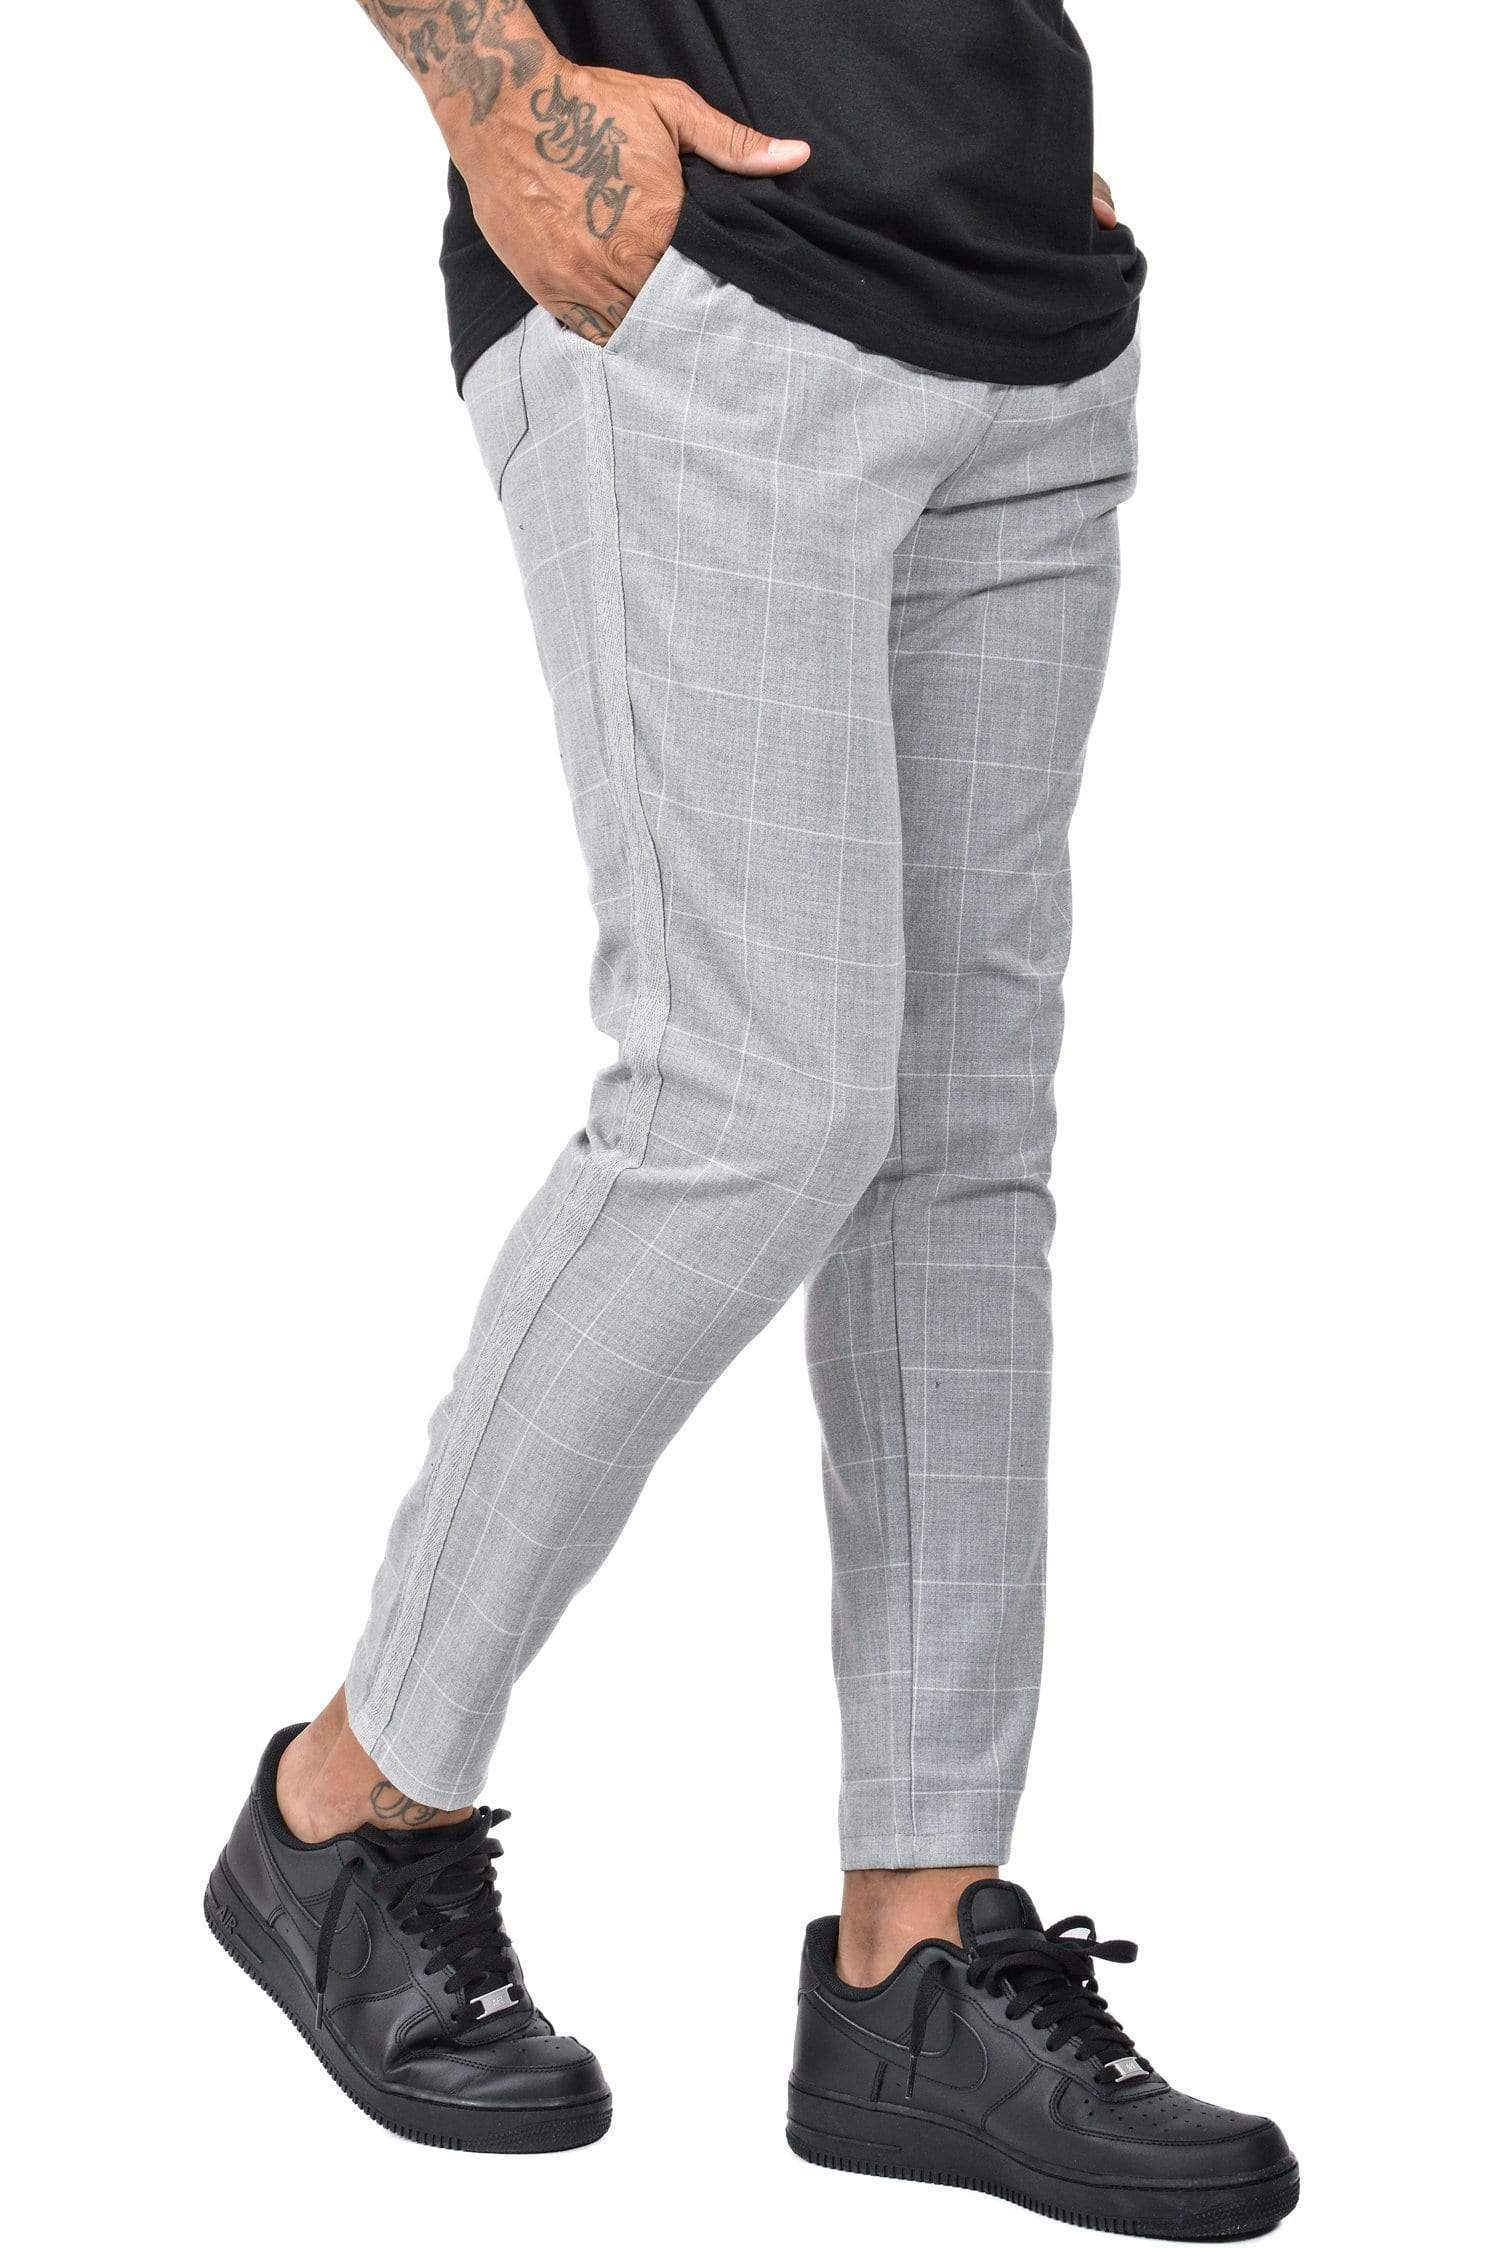 Vigo Squared Pants Grey - PEGADOR - Dominate the Hype